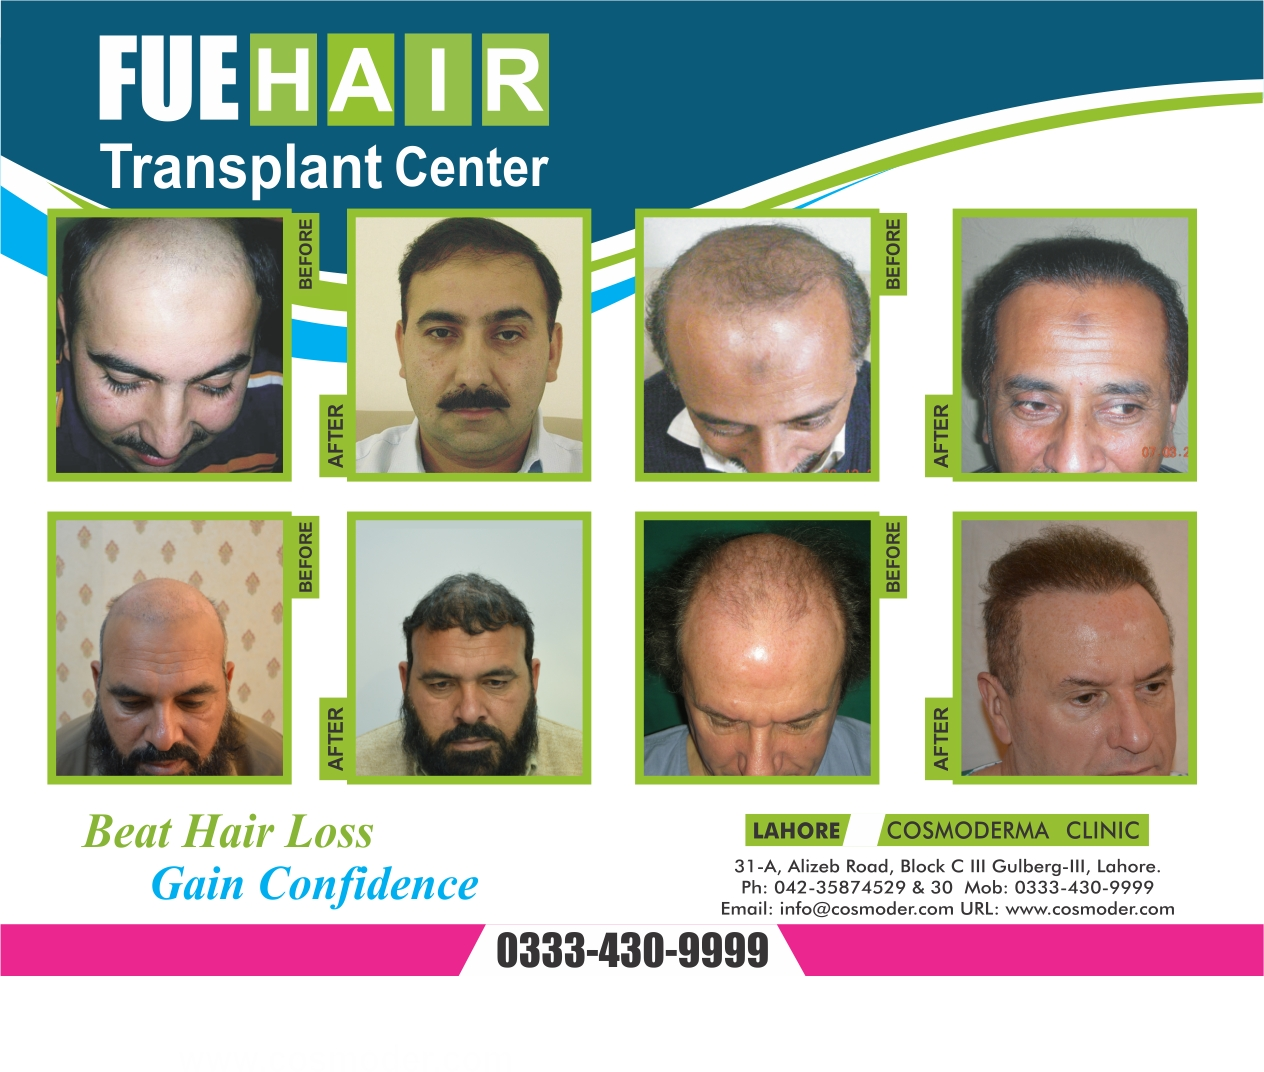 Fue hair transplant in Pakistan results